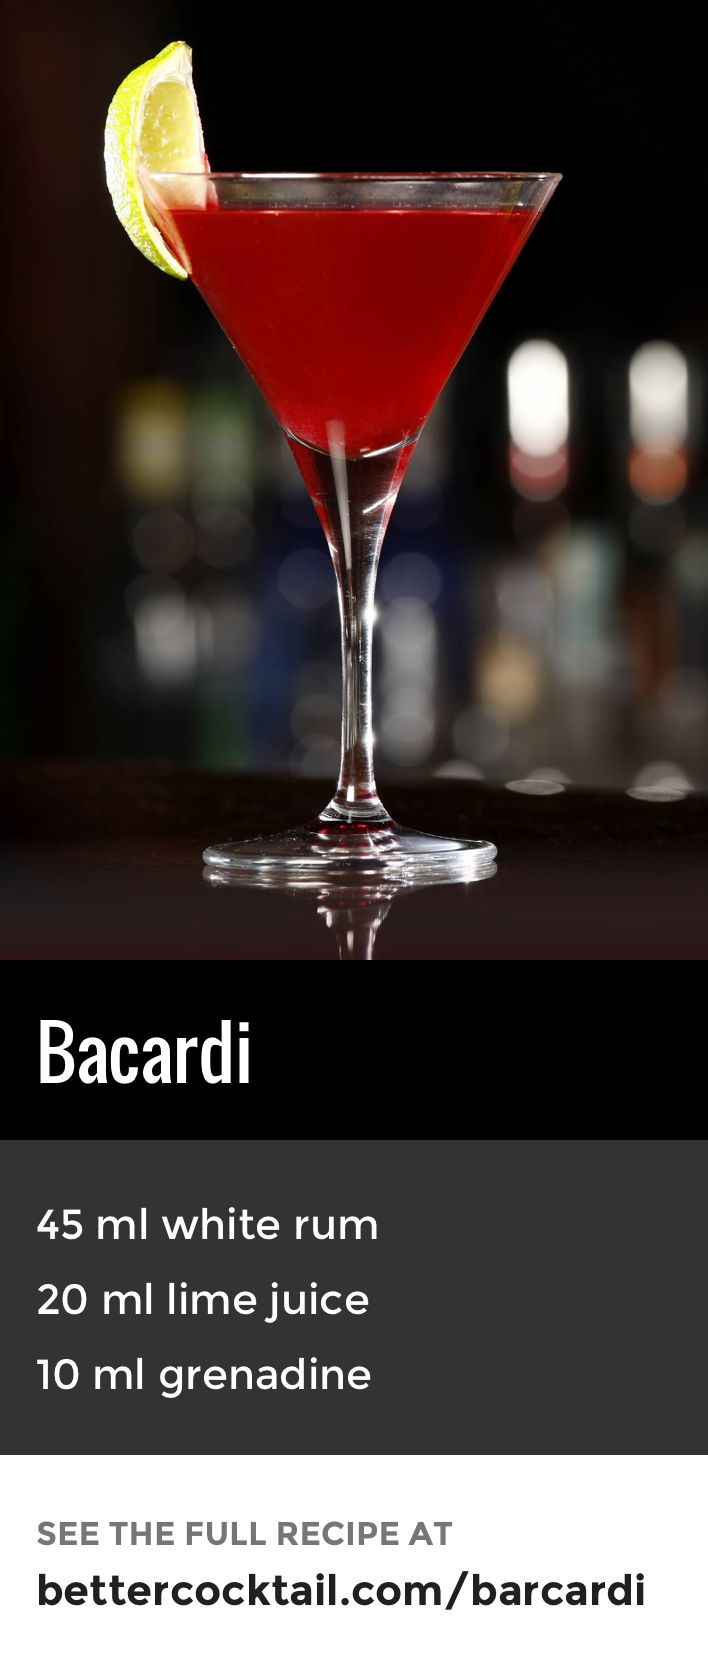 The Bacardi cocktail's primary ingredient is white rum and is usually served before dinner. The drink should be served in a cocktail glass and can be garnished with a slice lime.